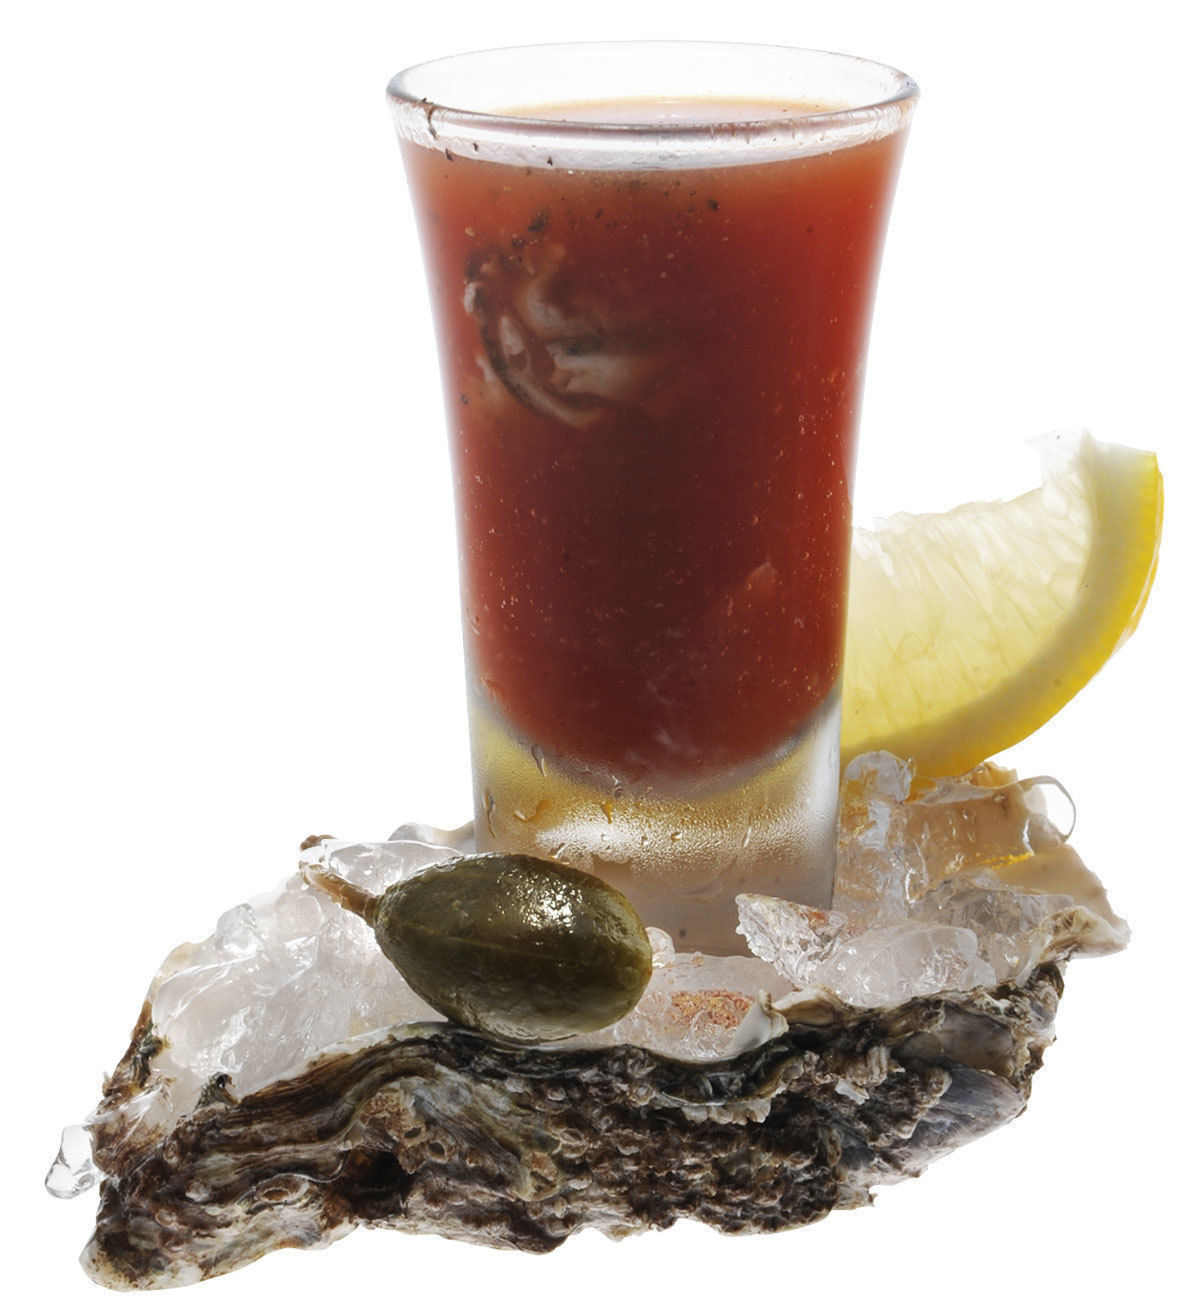 How to Make the Oyster Shooter